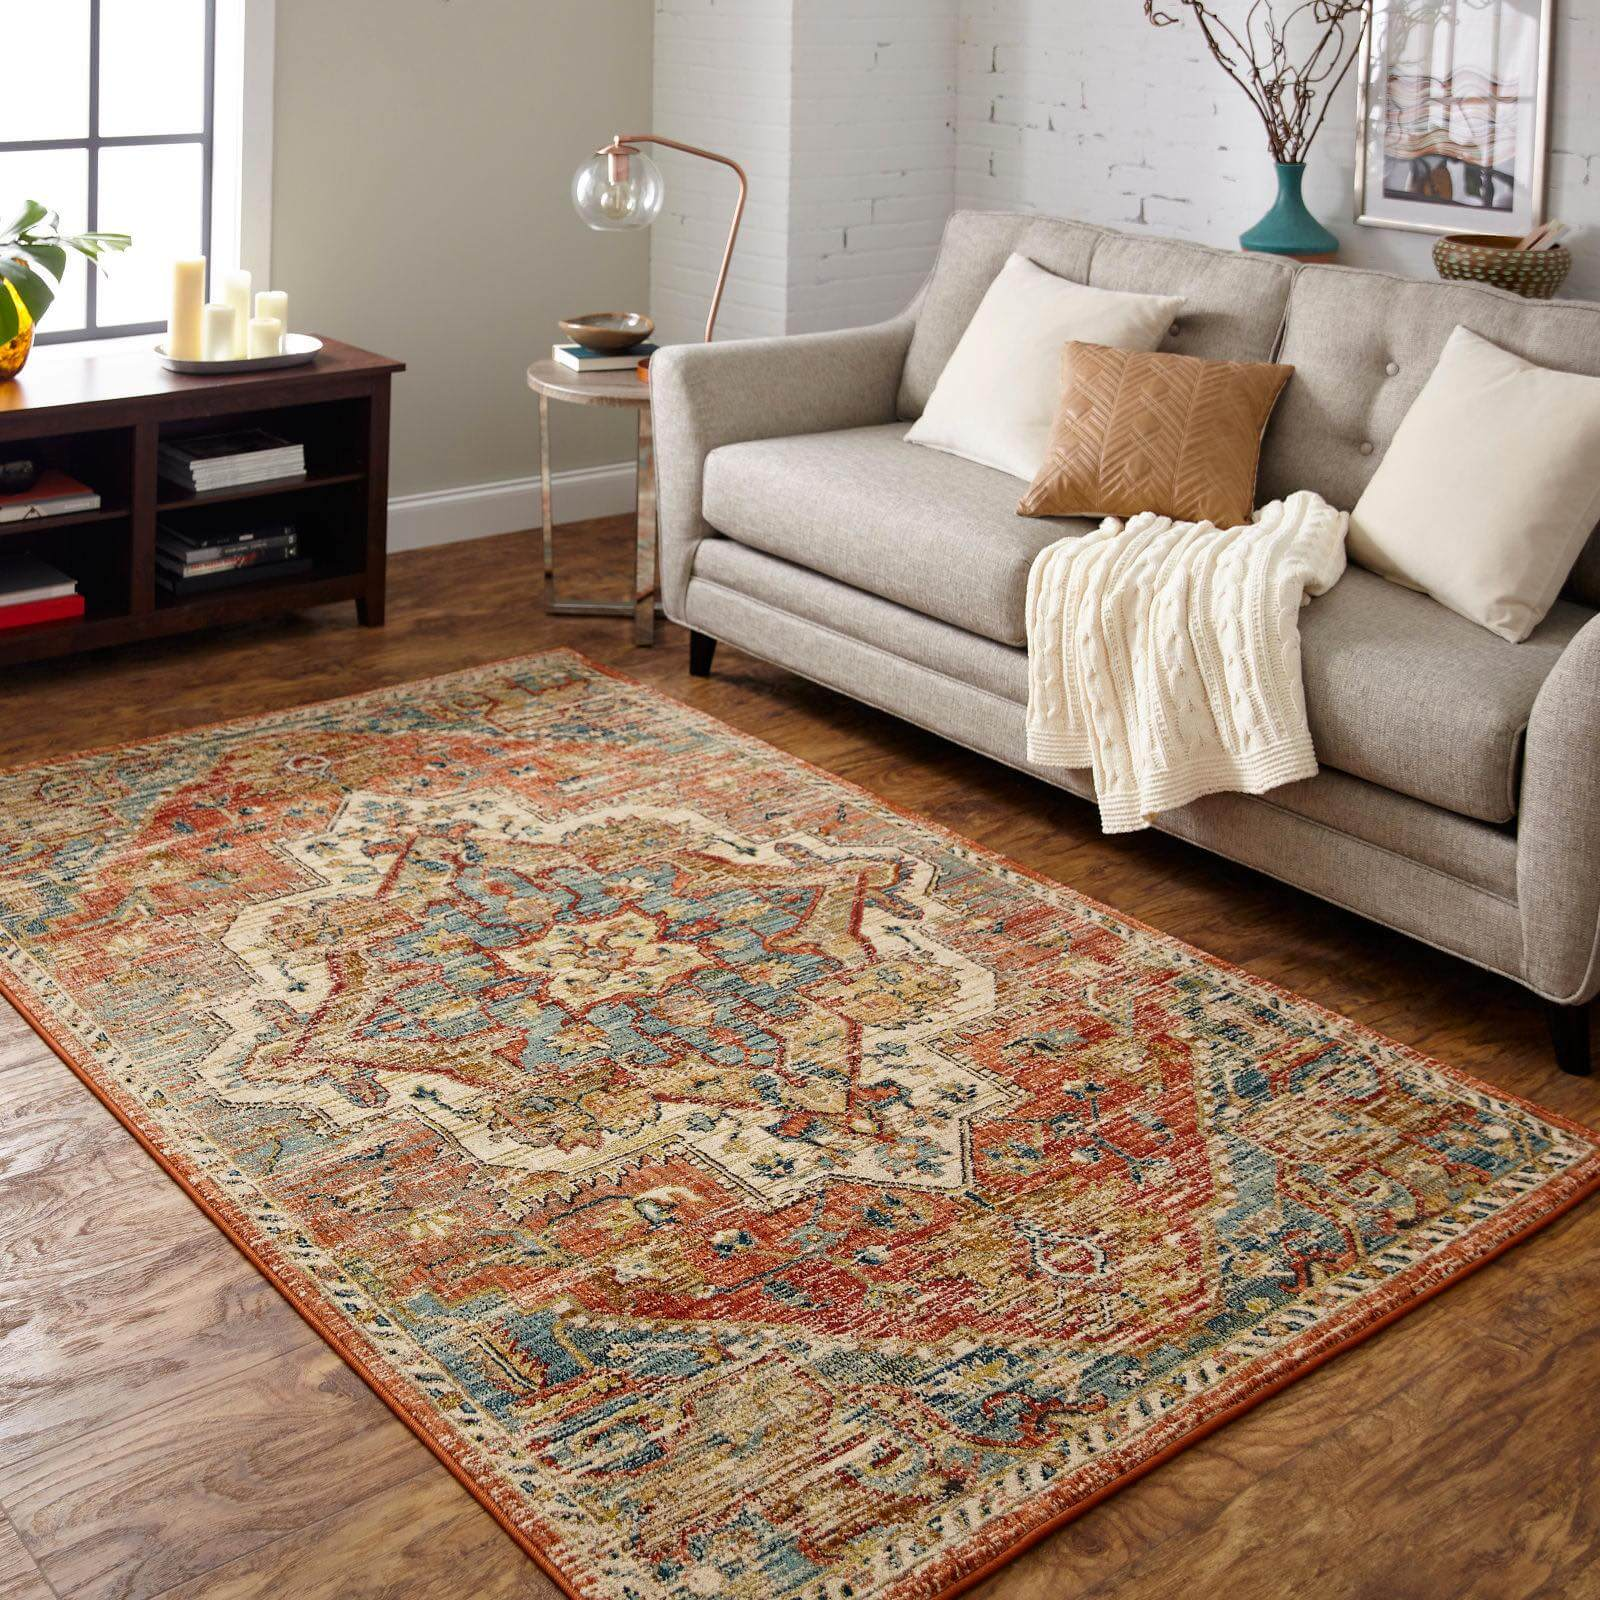 Select a Rug for Your Living Area | Shan's Carpets & Fine Flooring